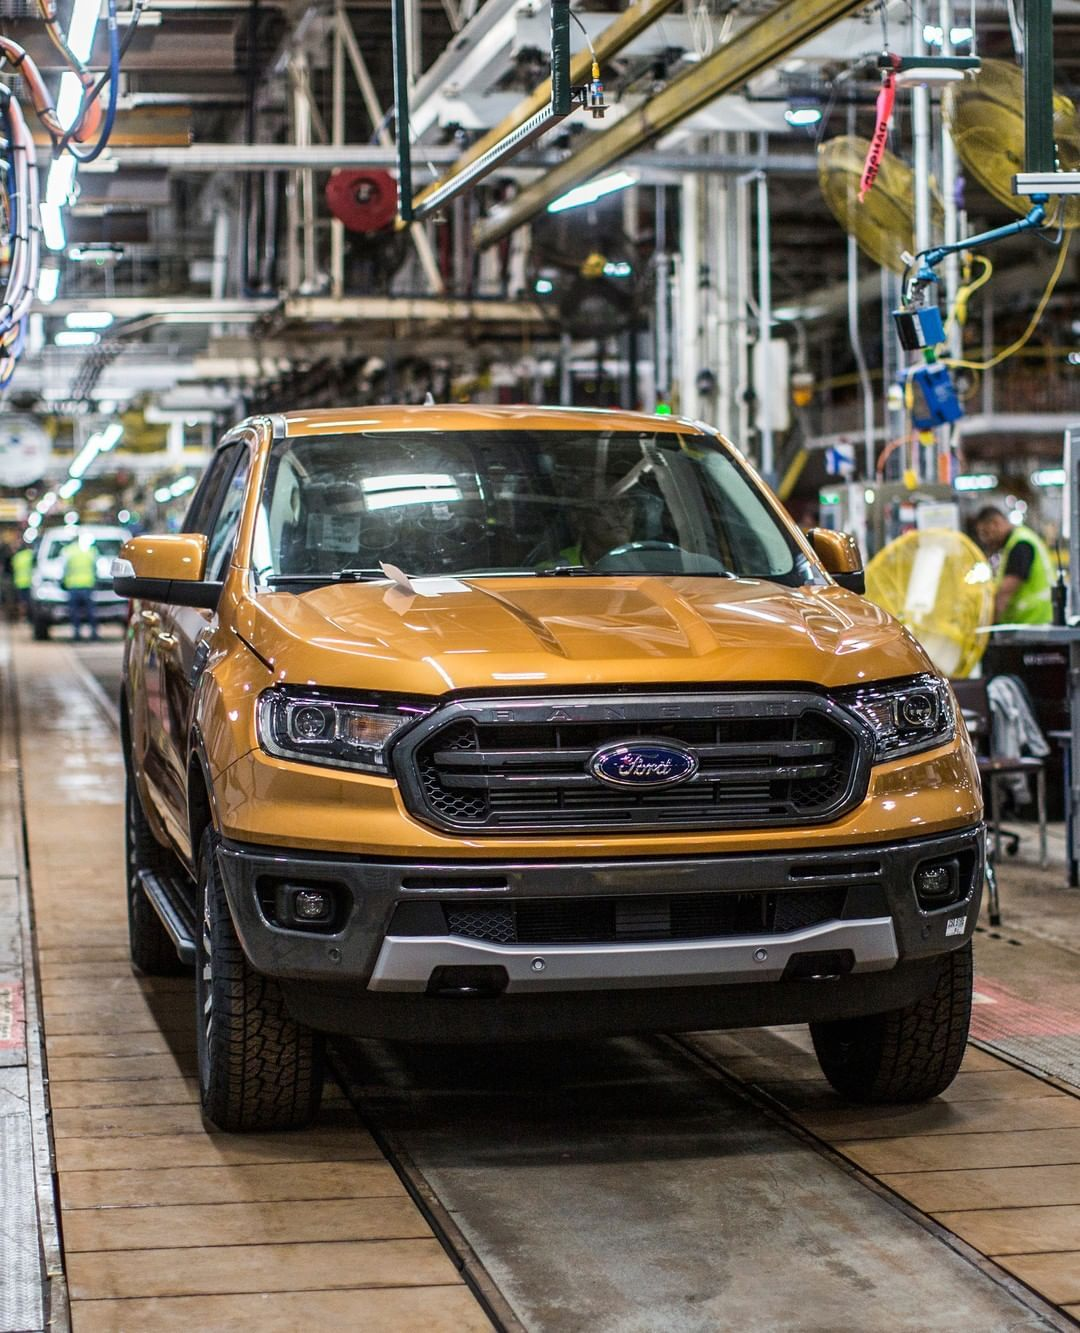 The New Ford Ranger Coming Off The Line Motortrend On Instagram The New Ford Ranger Ford Ranger Ranger